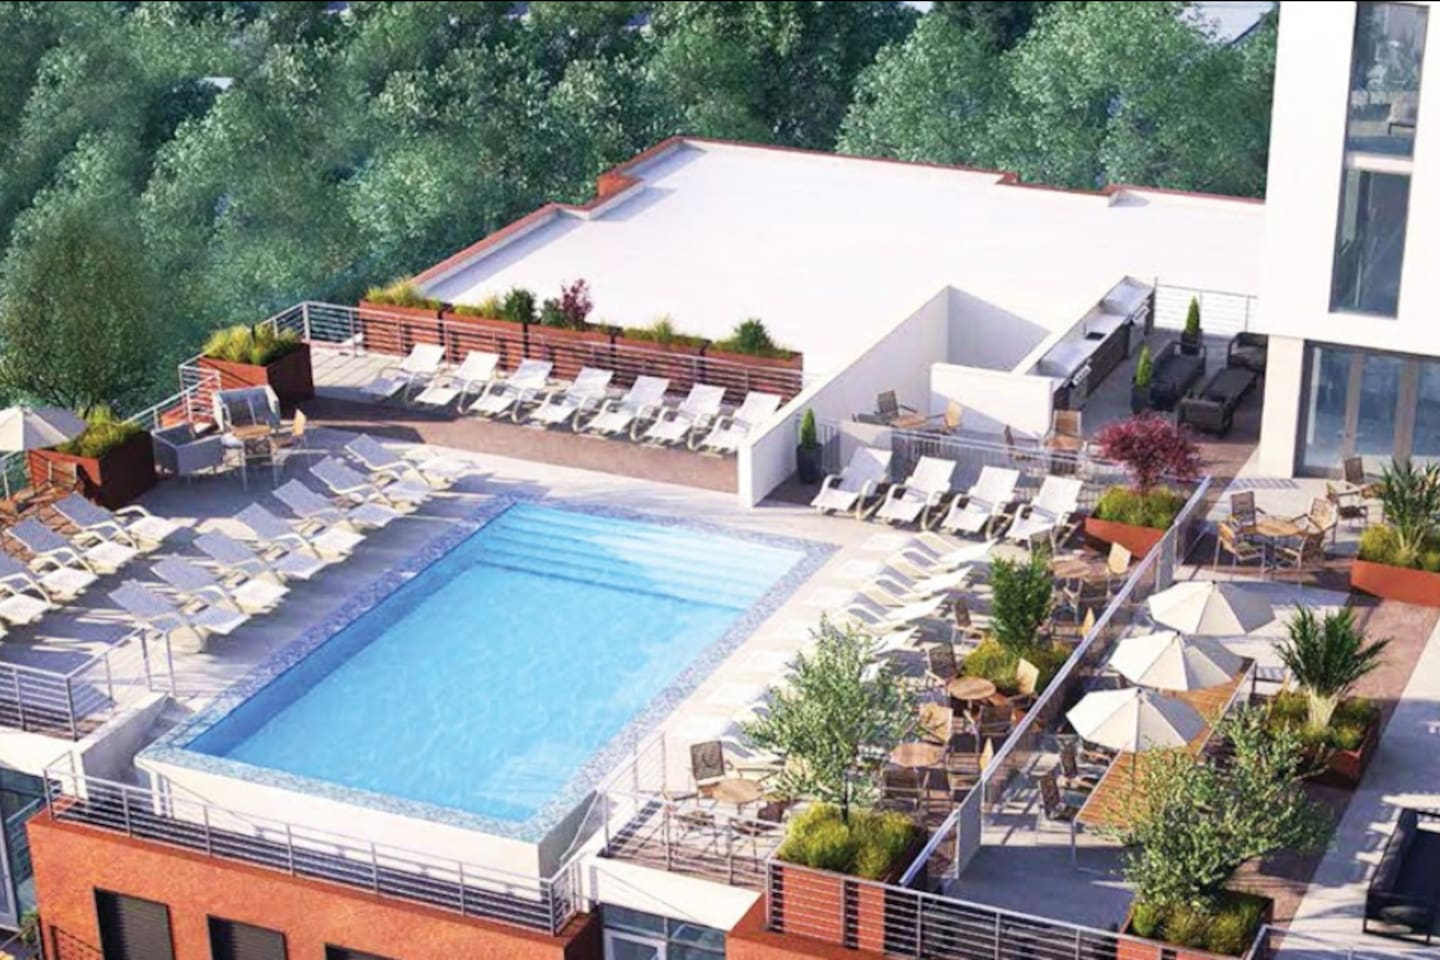 Rooftop pool and guest areas